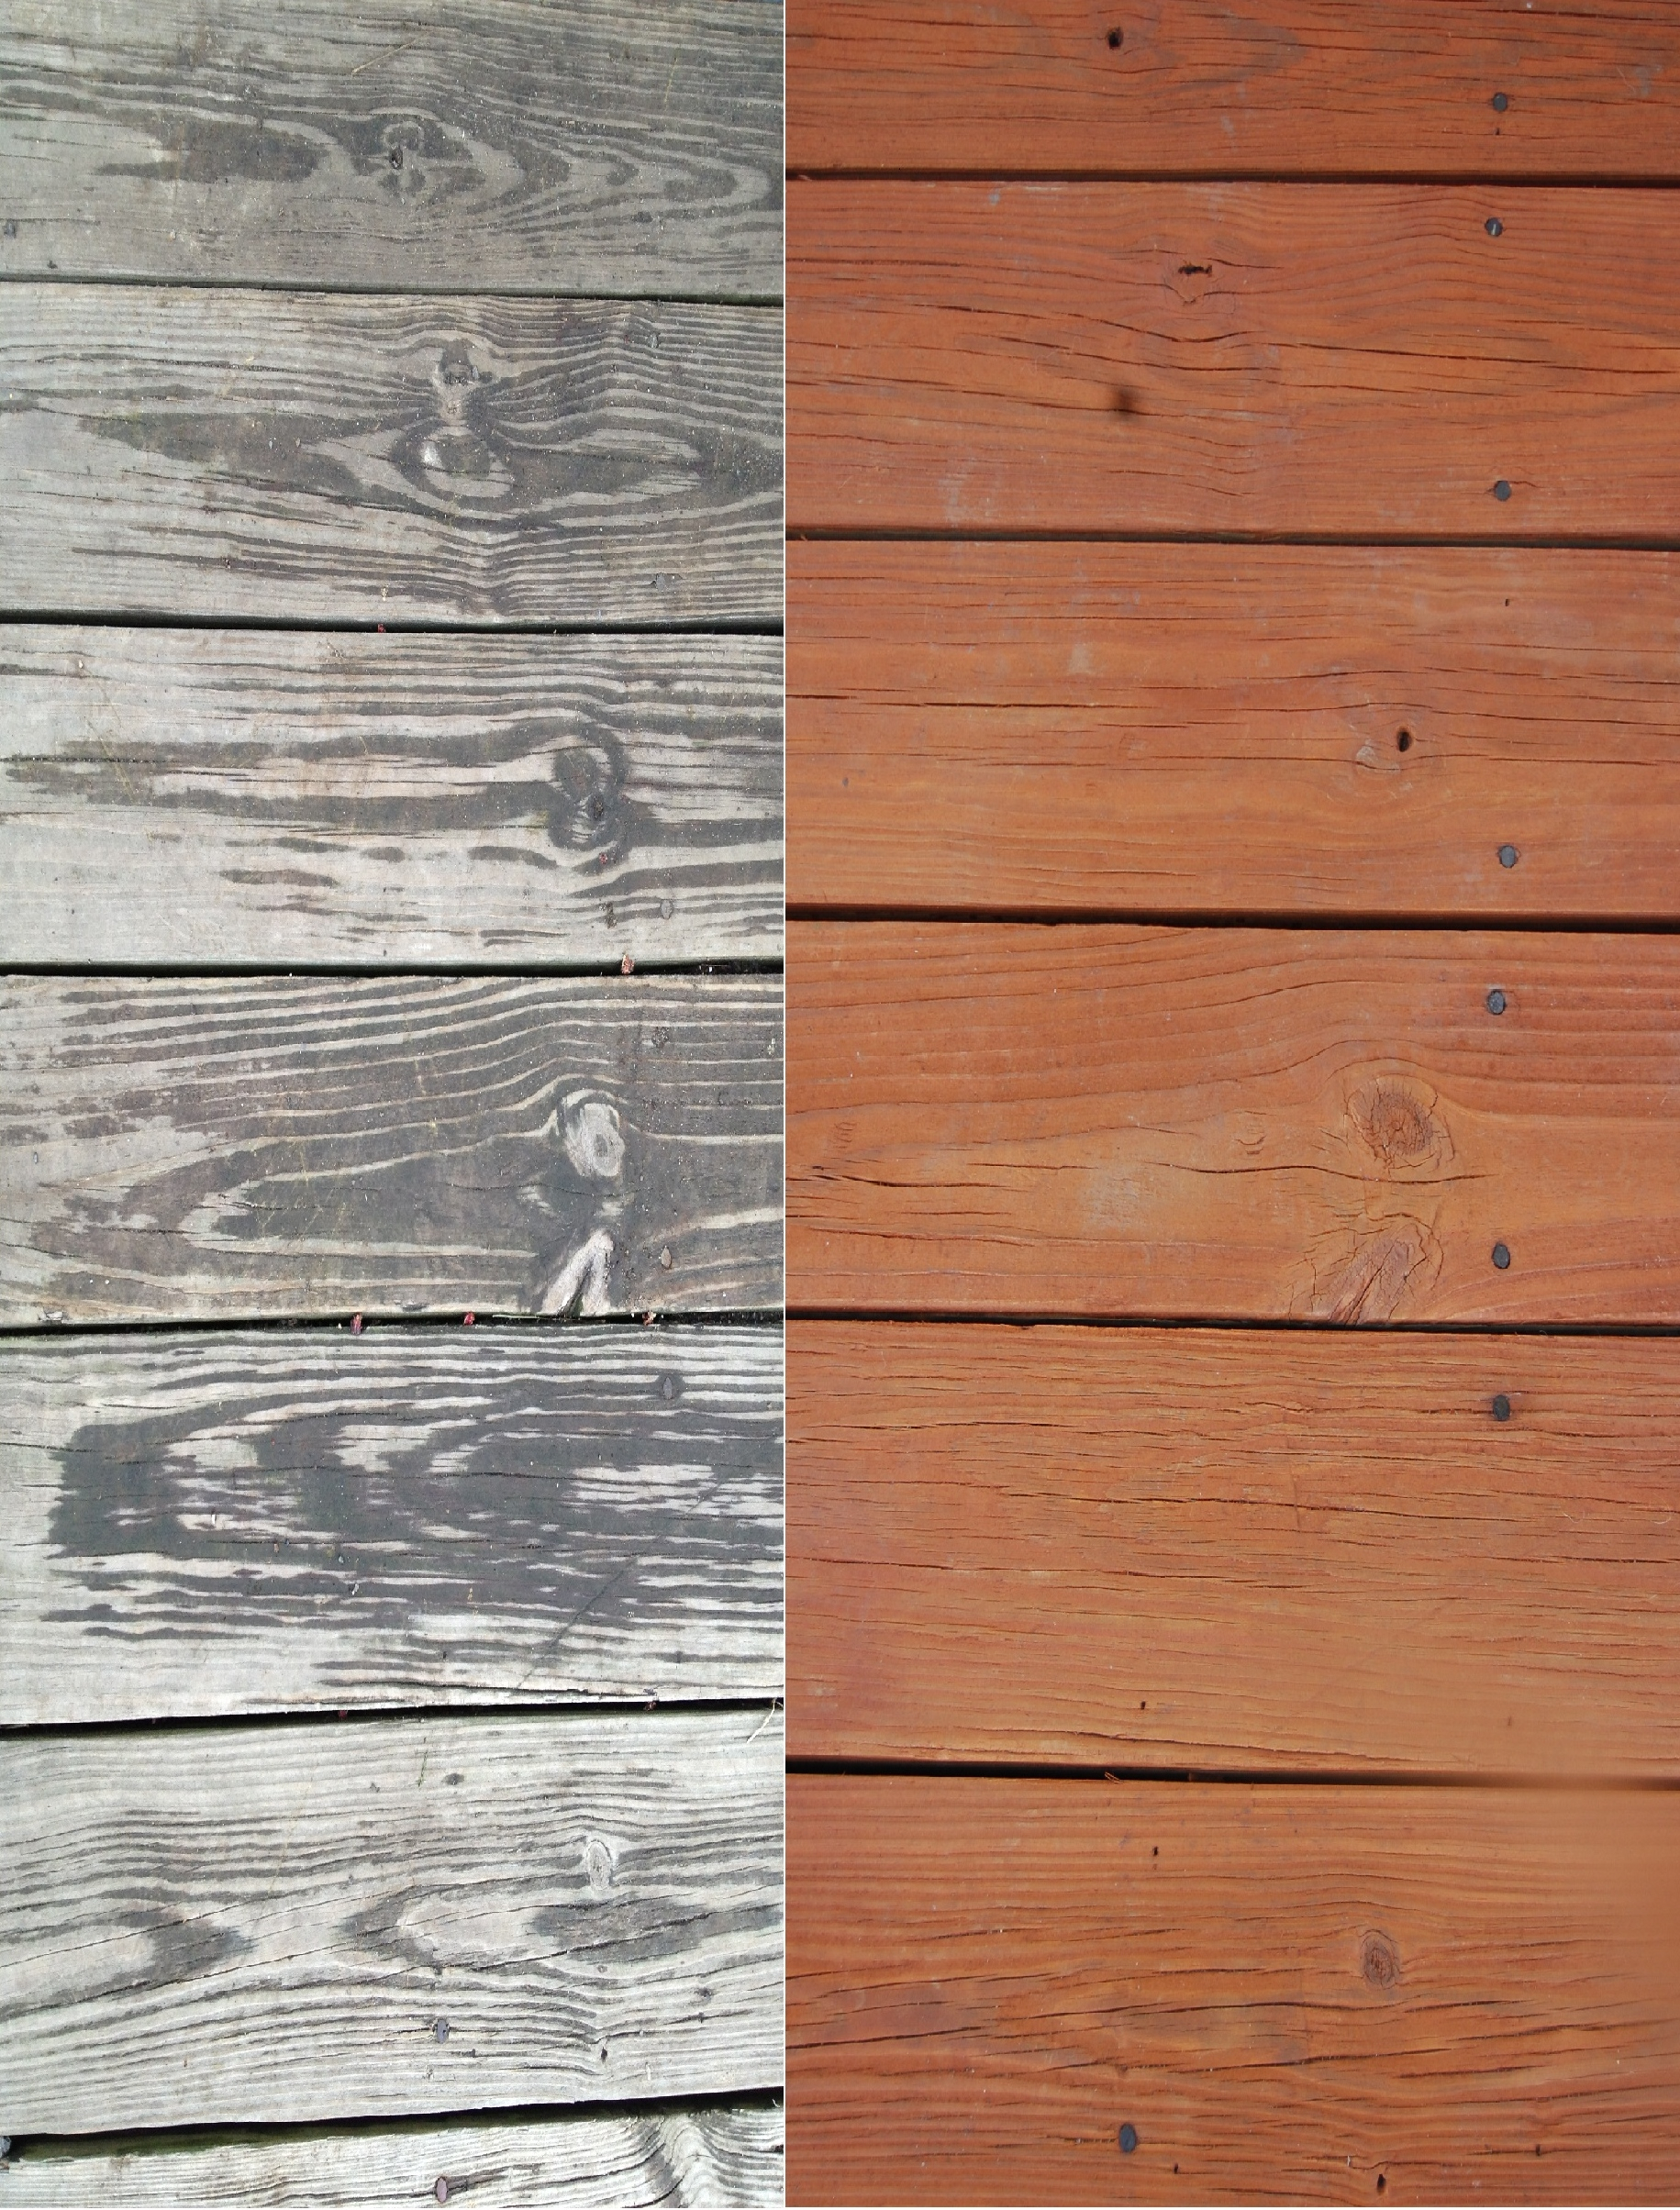 Best Wood Stain For Pool Deck With Measurements 1831 X 2409